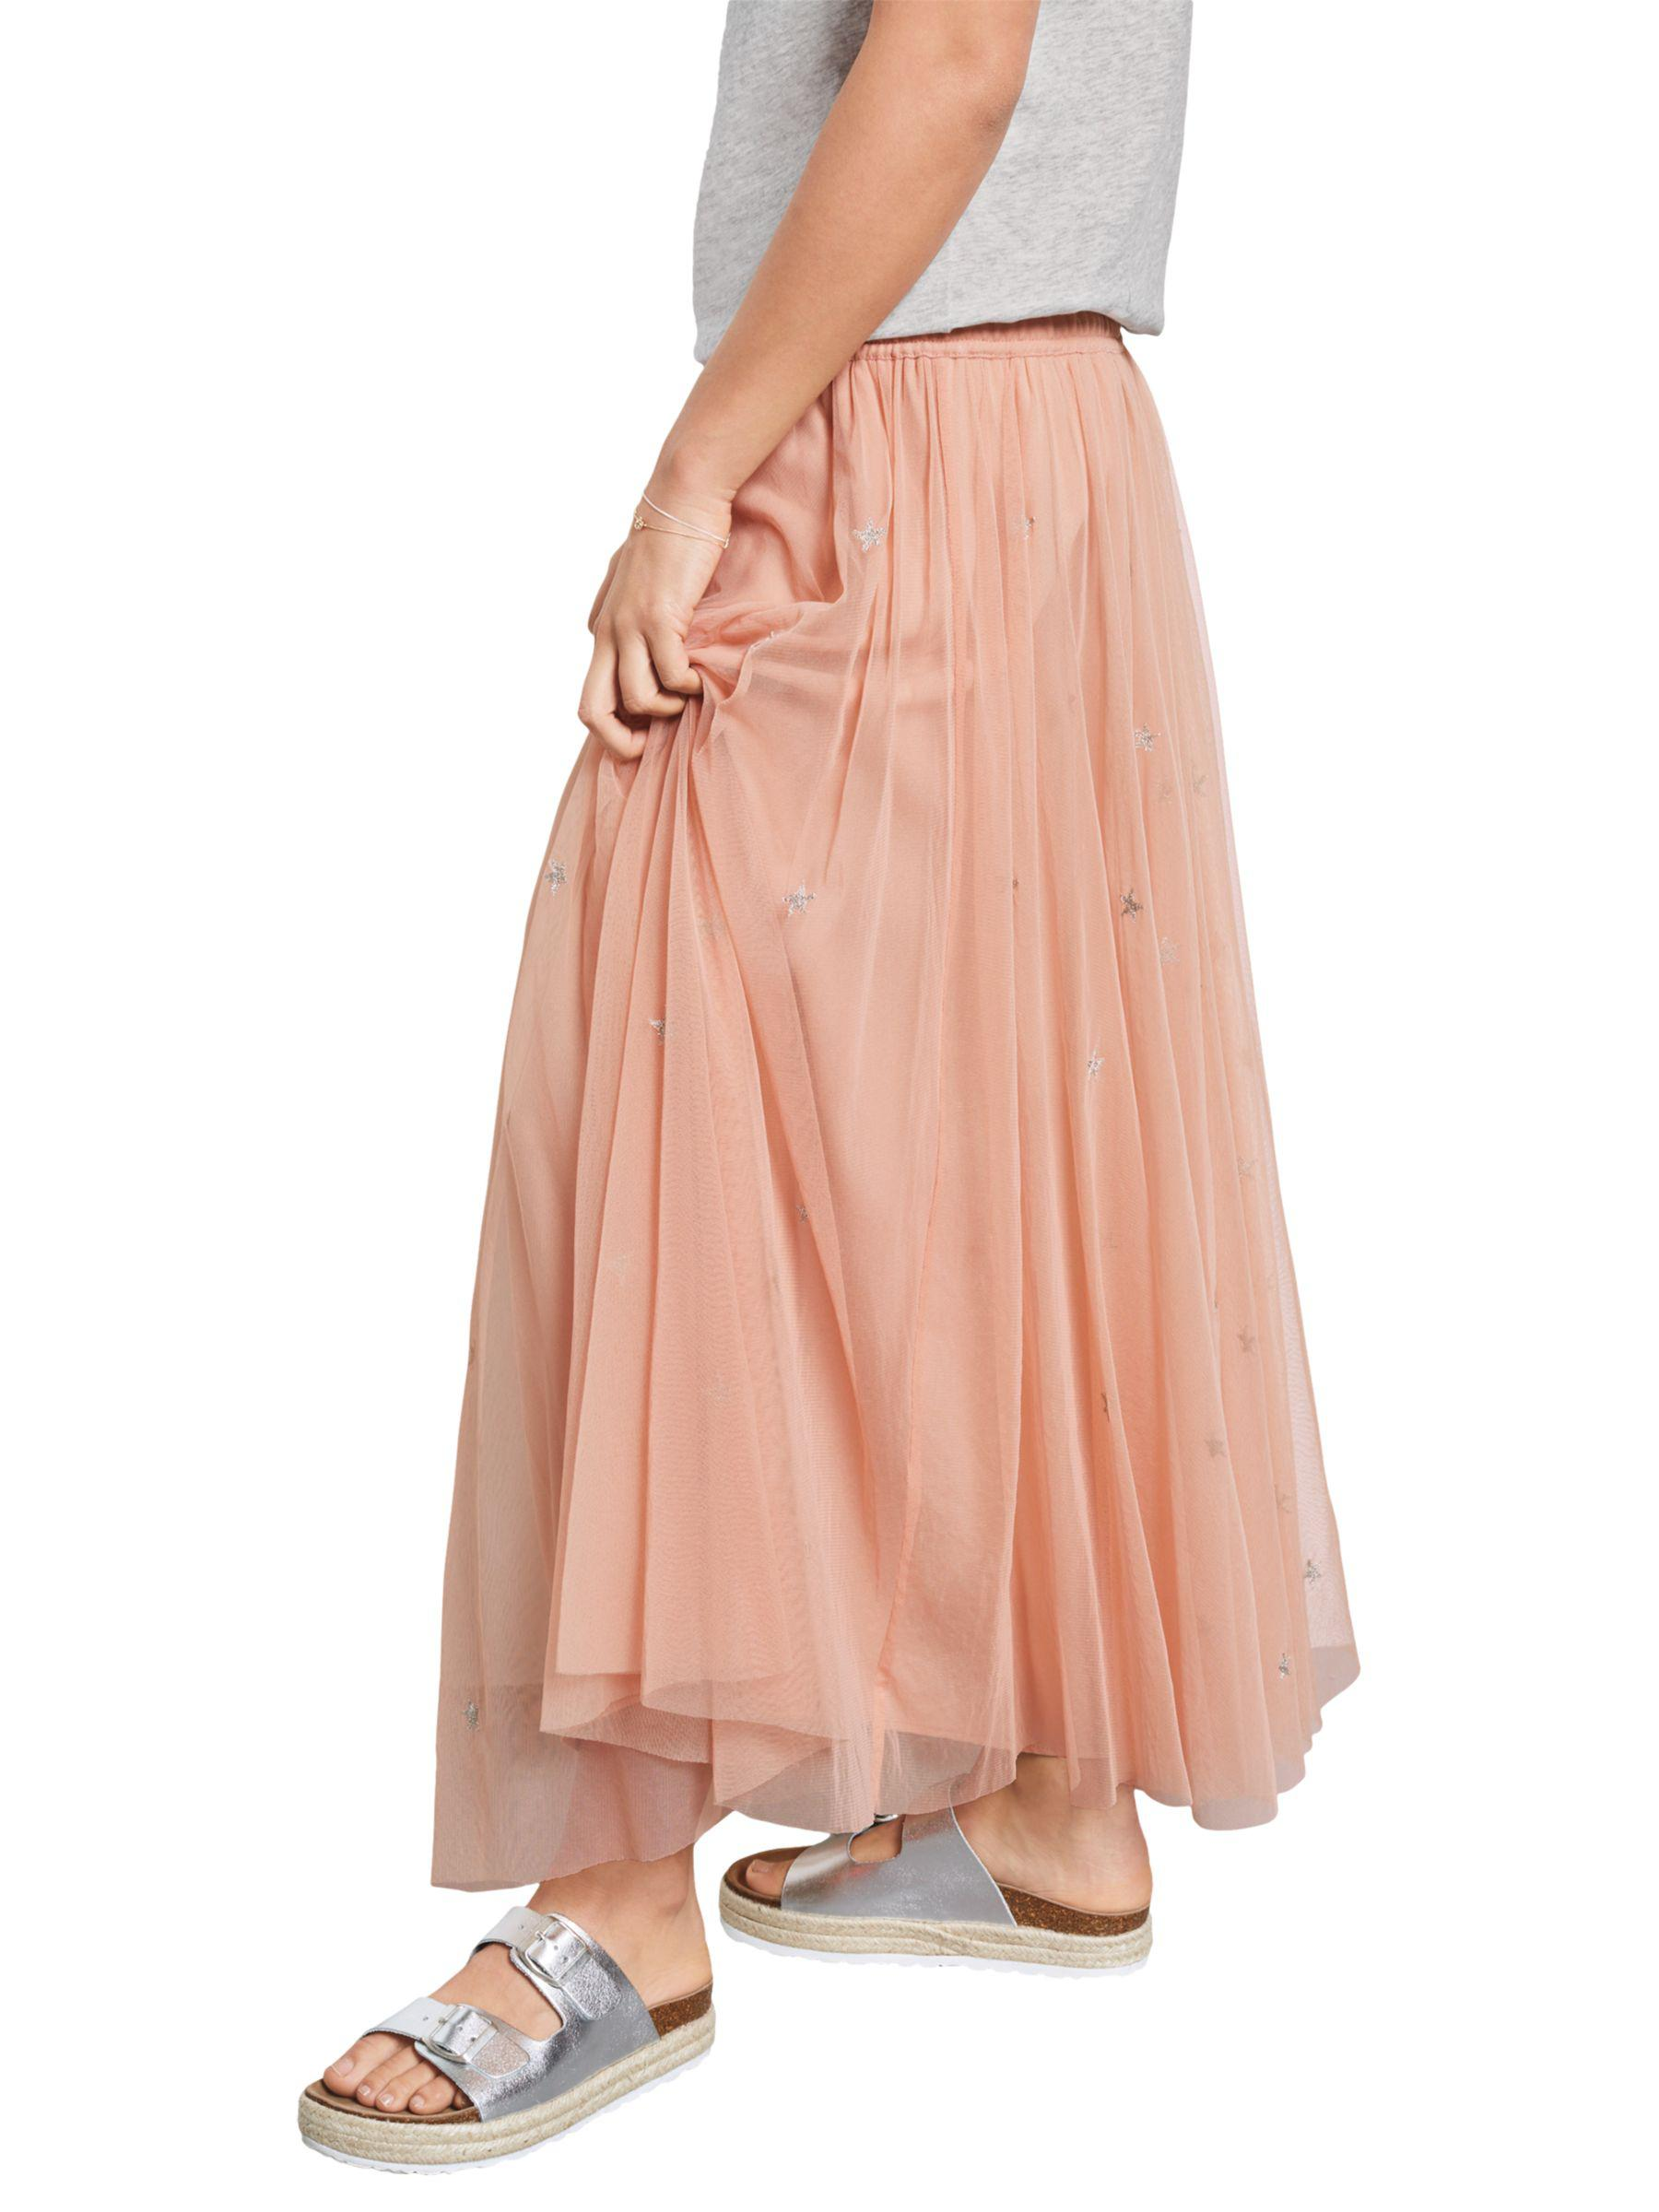 254c8dad7087 John Lewis Hush Star Embroidered Skirt in Pink - Lyst